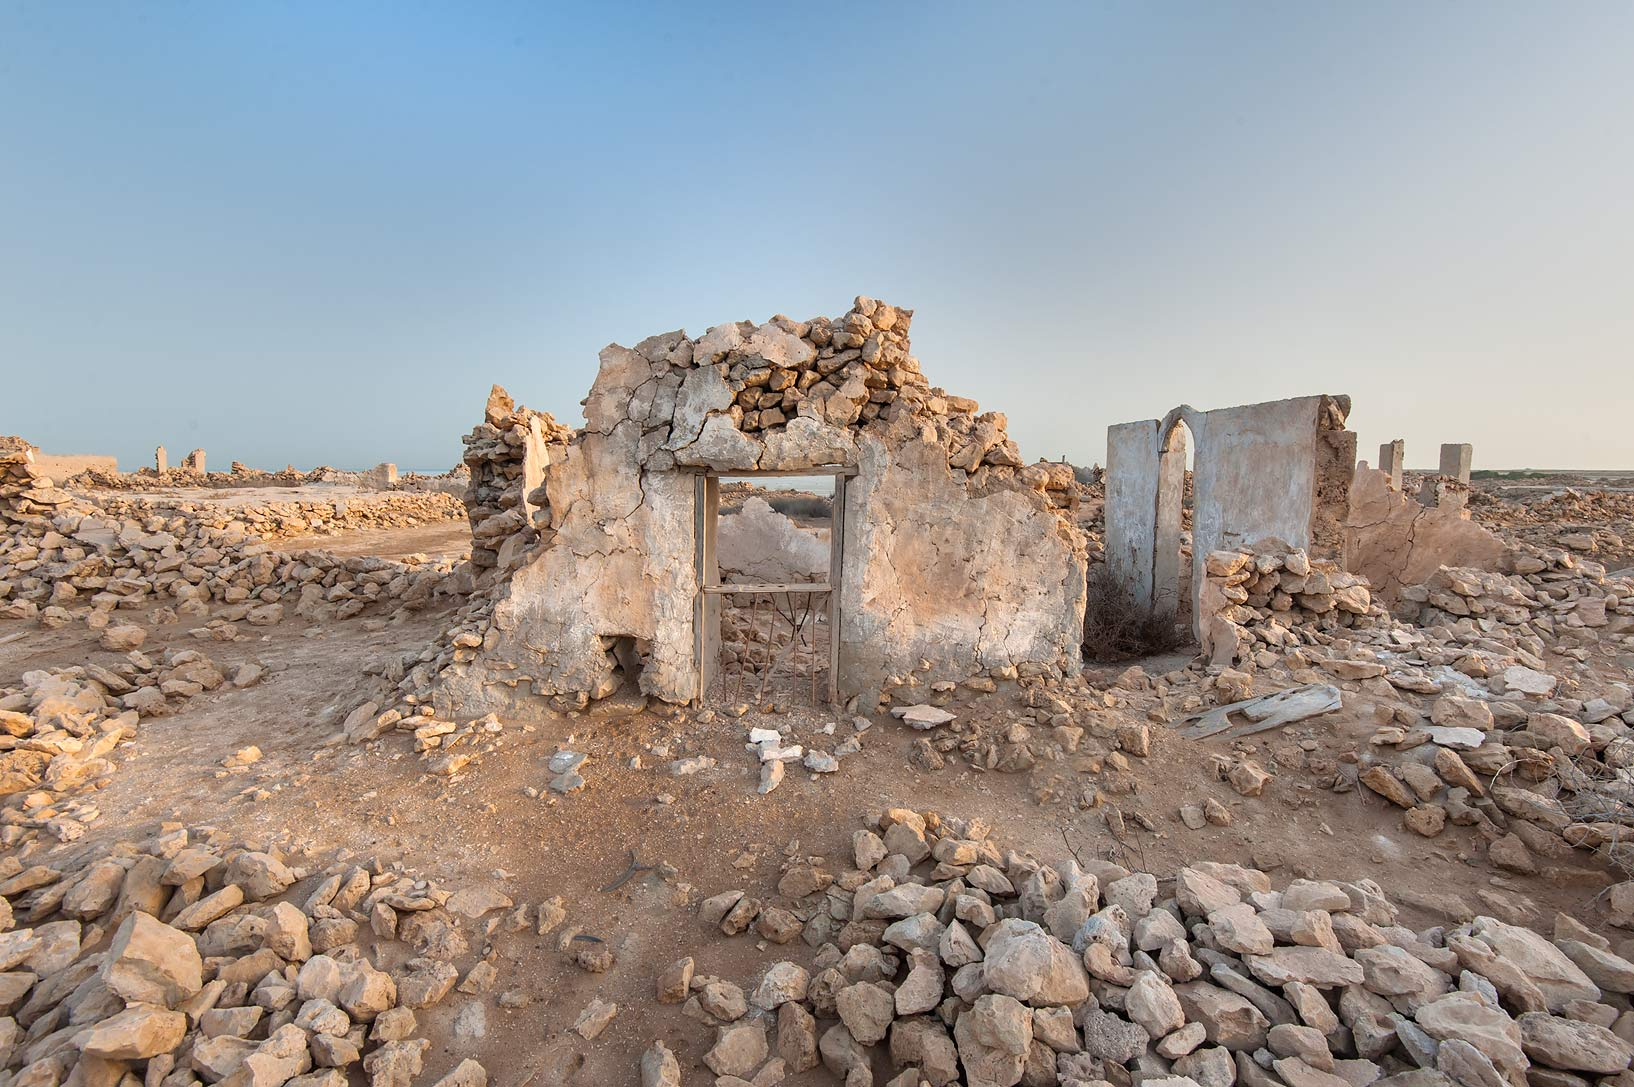 Window frame in a village of Al Jumail (Jumayl) west of Ruwais. Northern Qatar